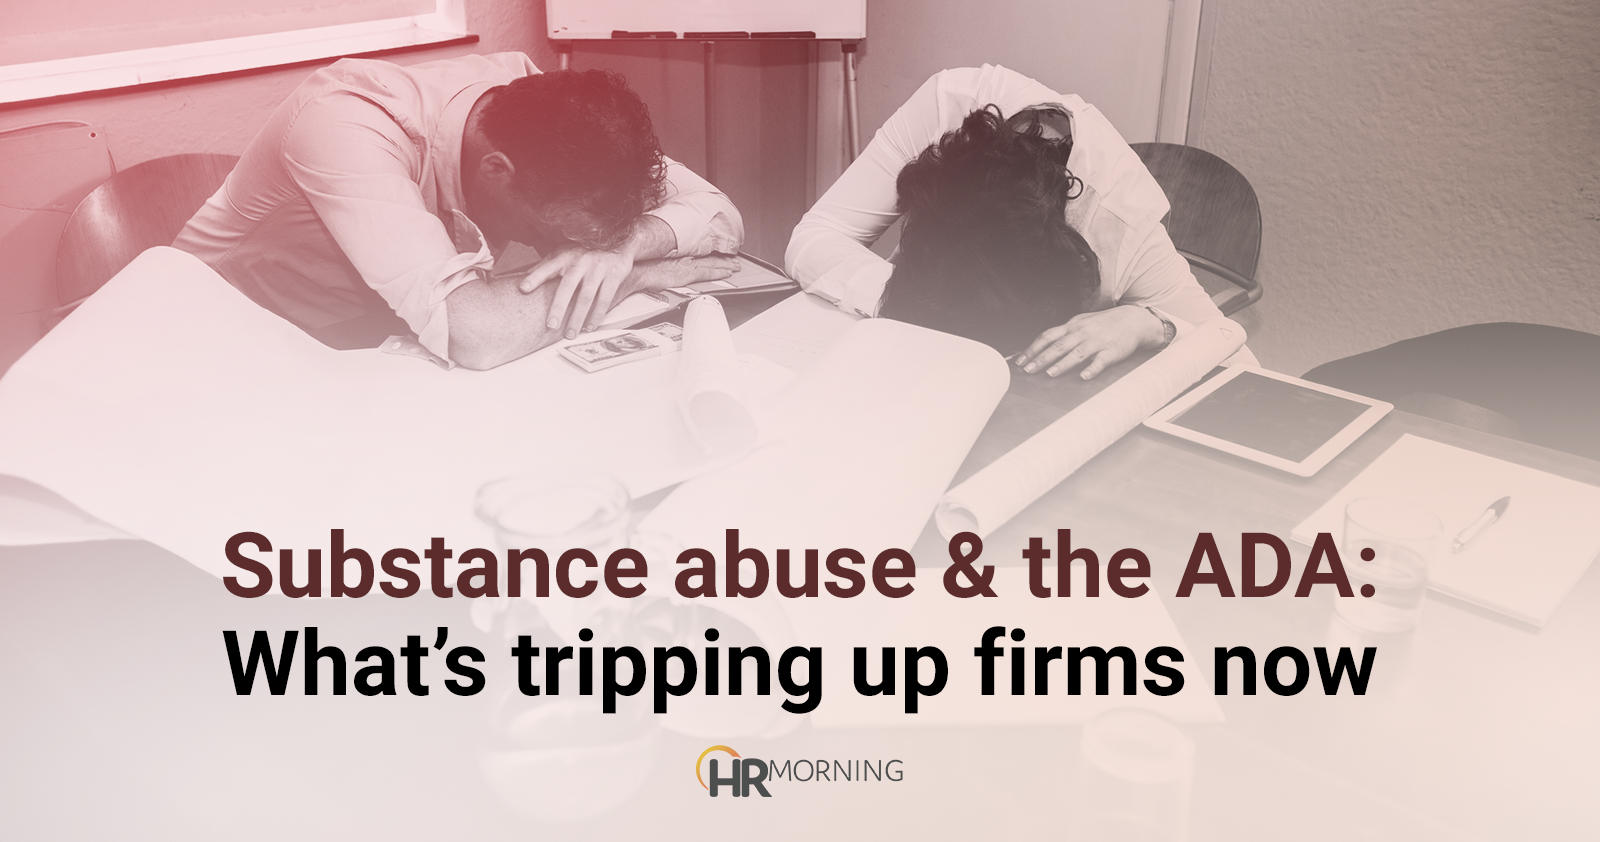 Substance abuse & the ADA: What's tripping up firms now